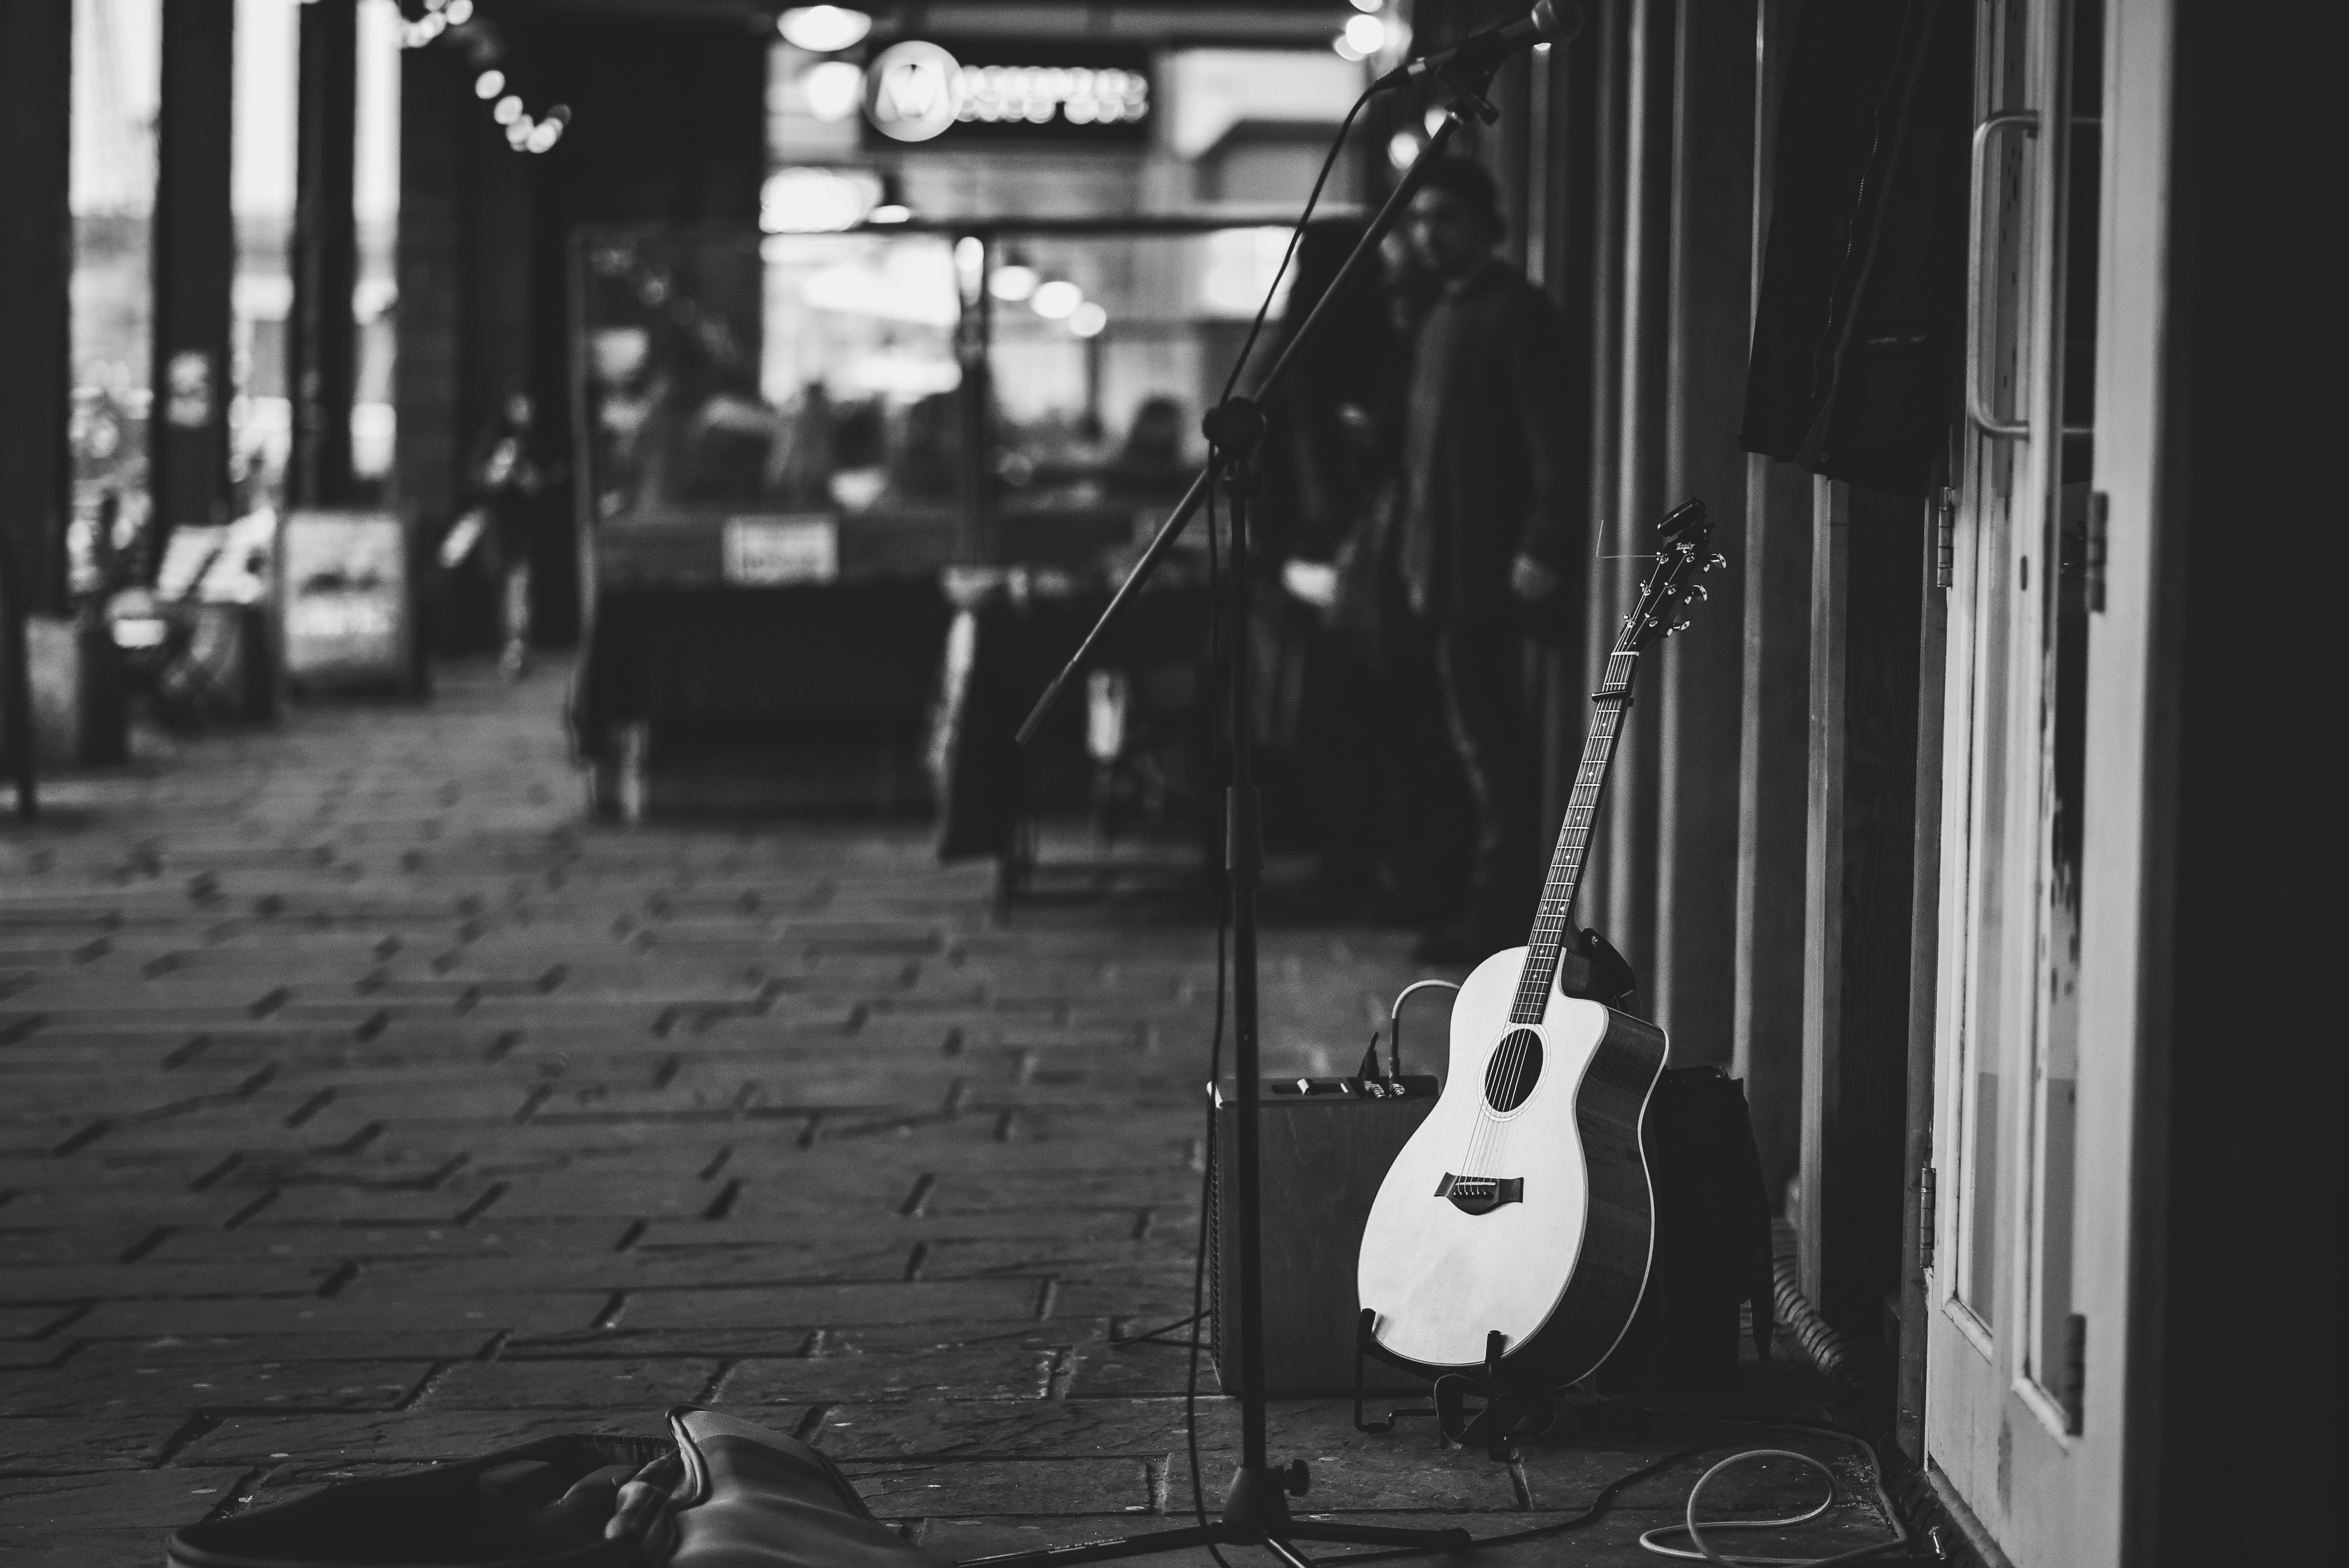 Guitar on the street